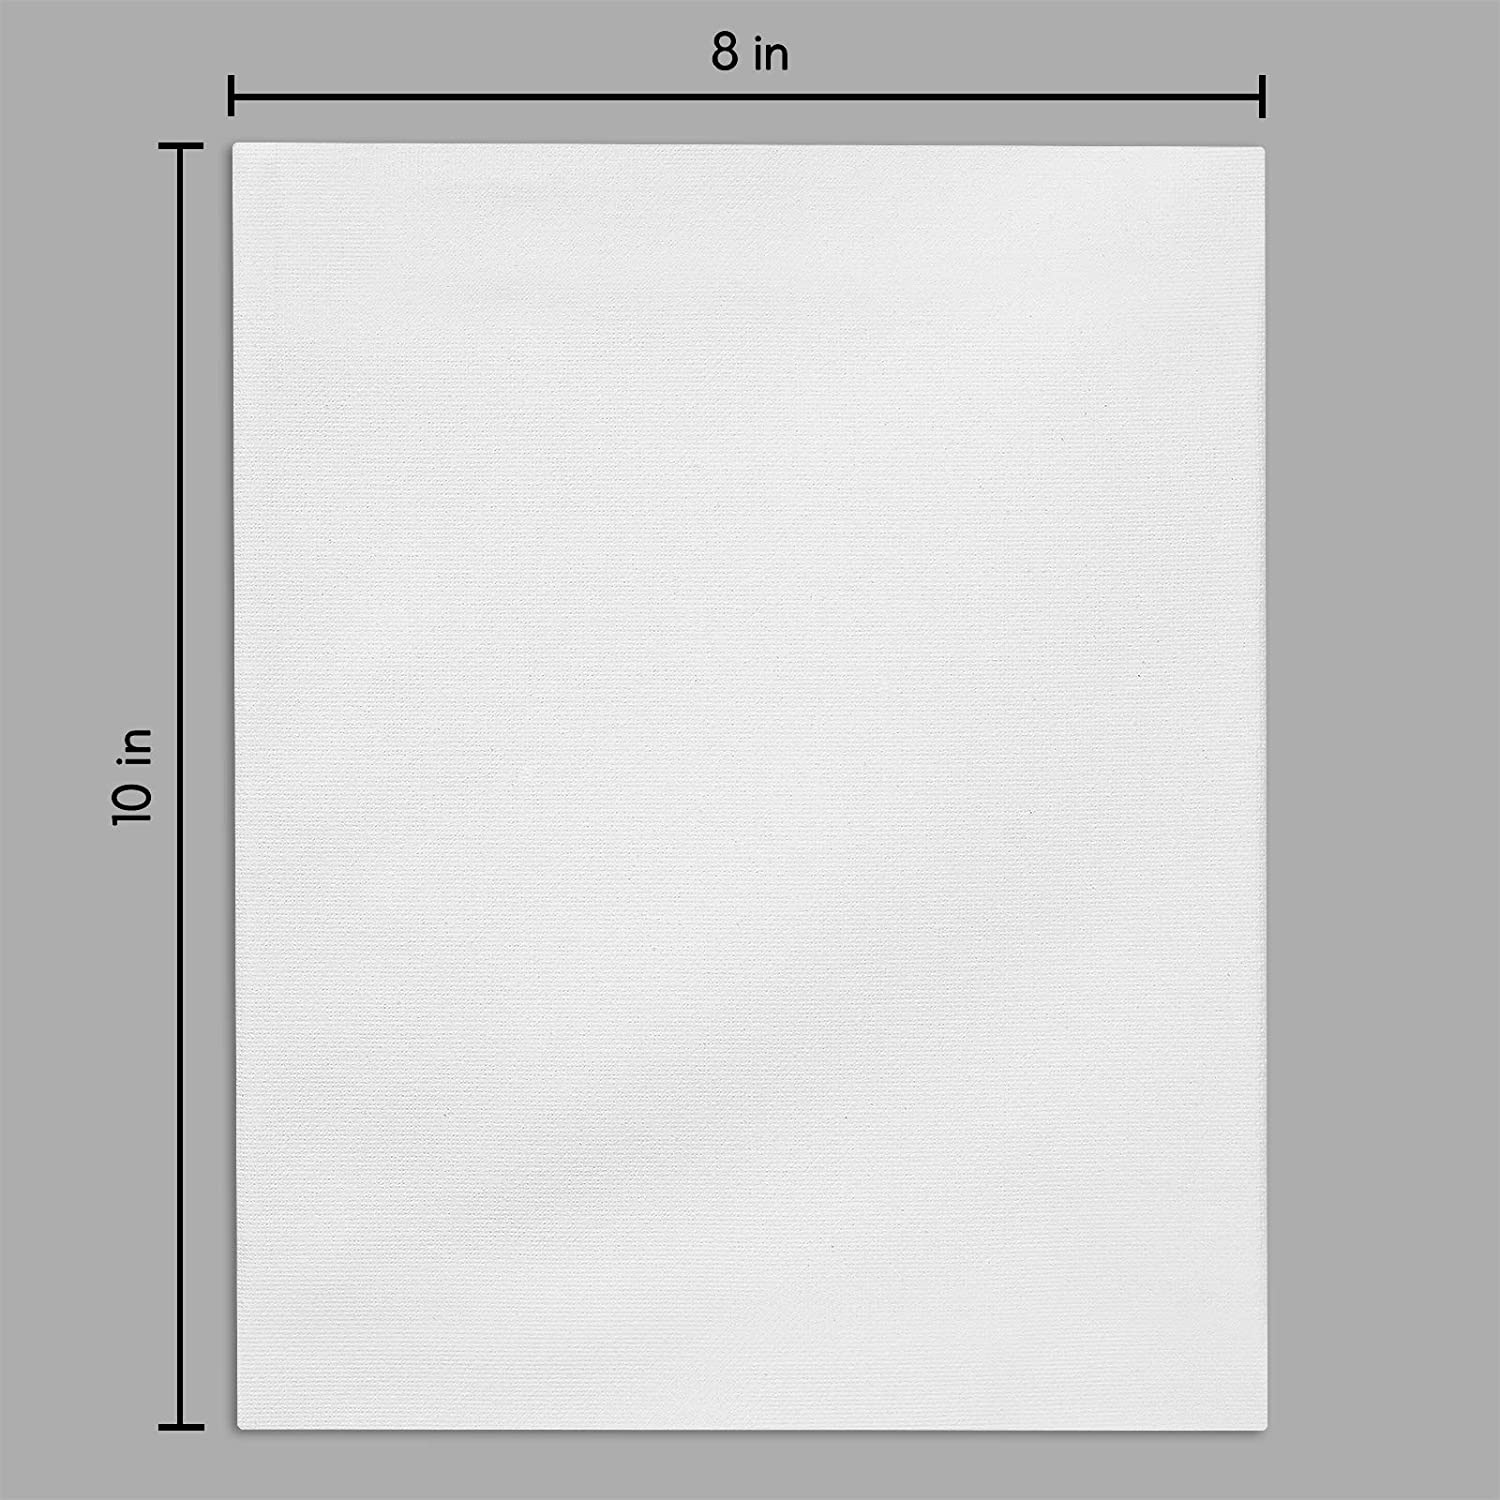 miniature 9 - Americanflat Stretched Canvas in White 100% Cotton Wooden Frames & Acid Free